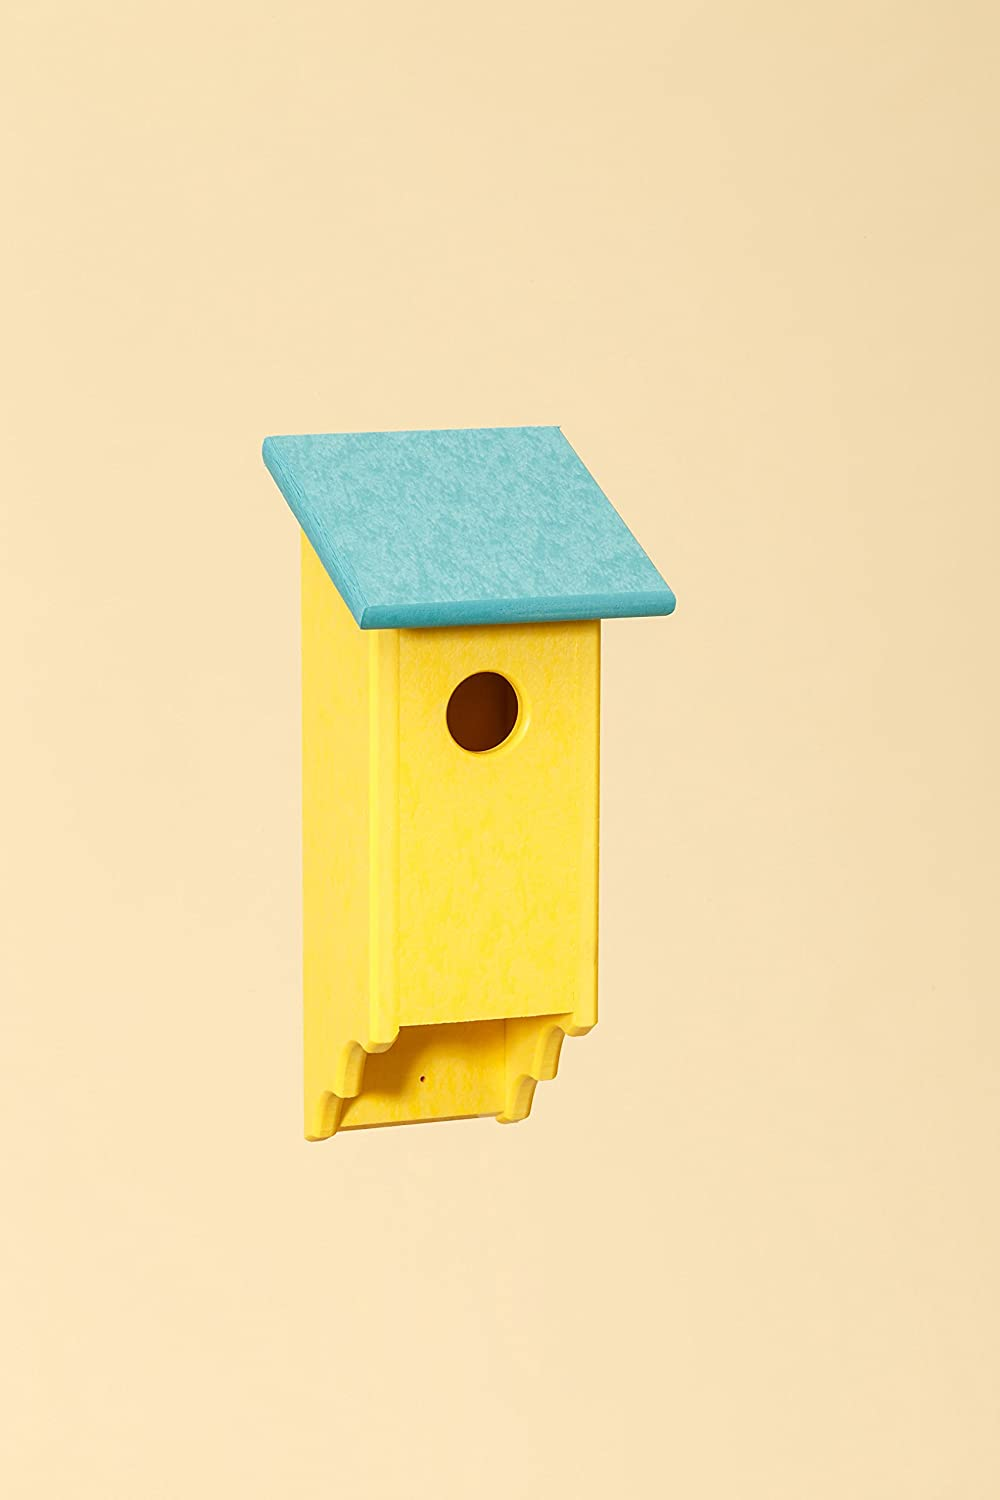 Poly blueebird House (Yellow with Teal Top)